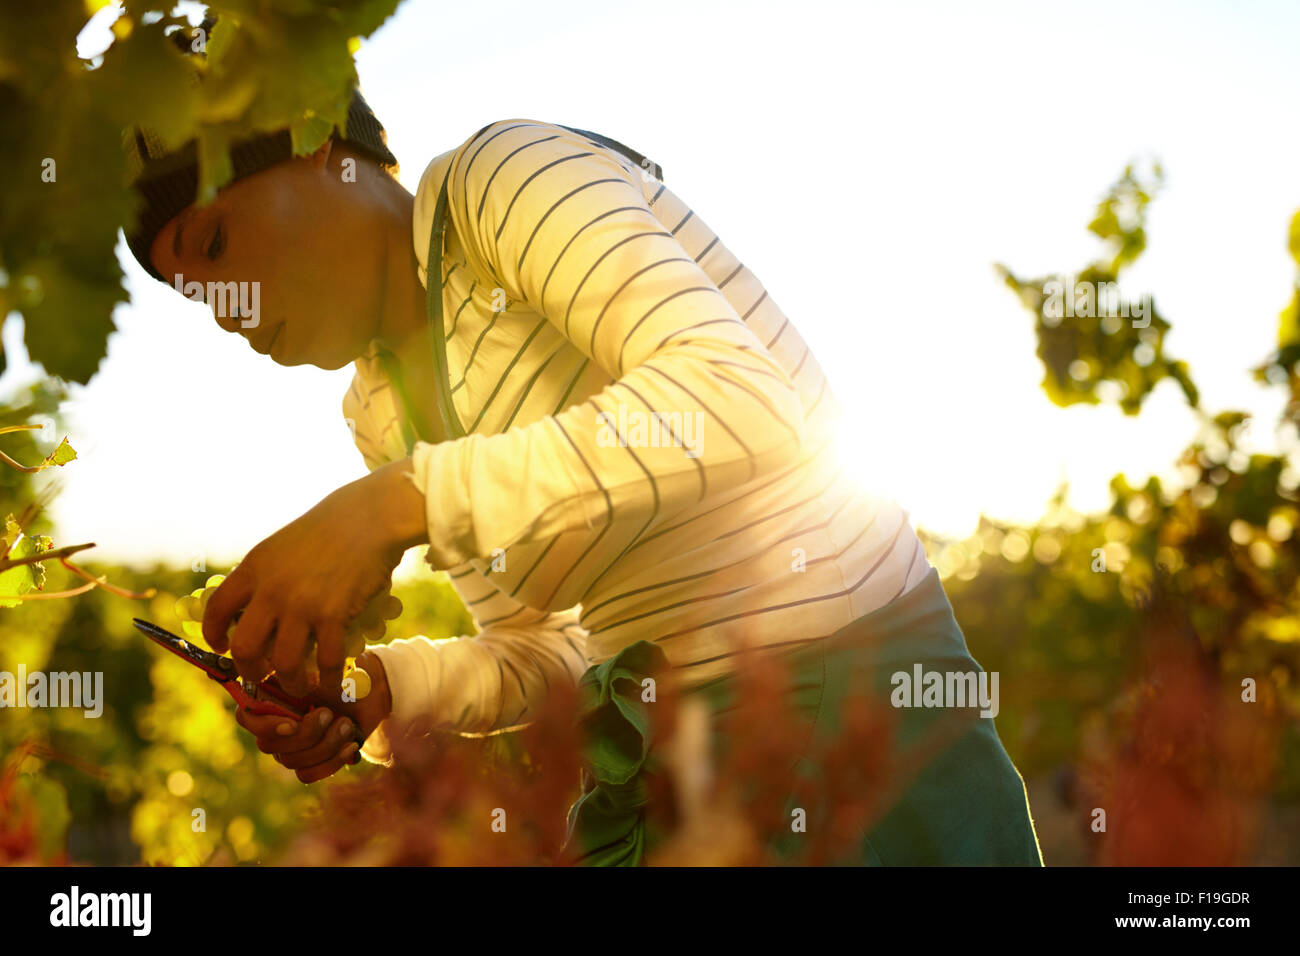 Young woman cutting green grapes from vine during autumn harvest. Female worker harvesting grapes in vineyard. - Stock Image